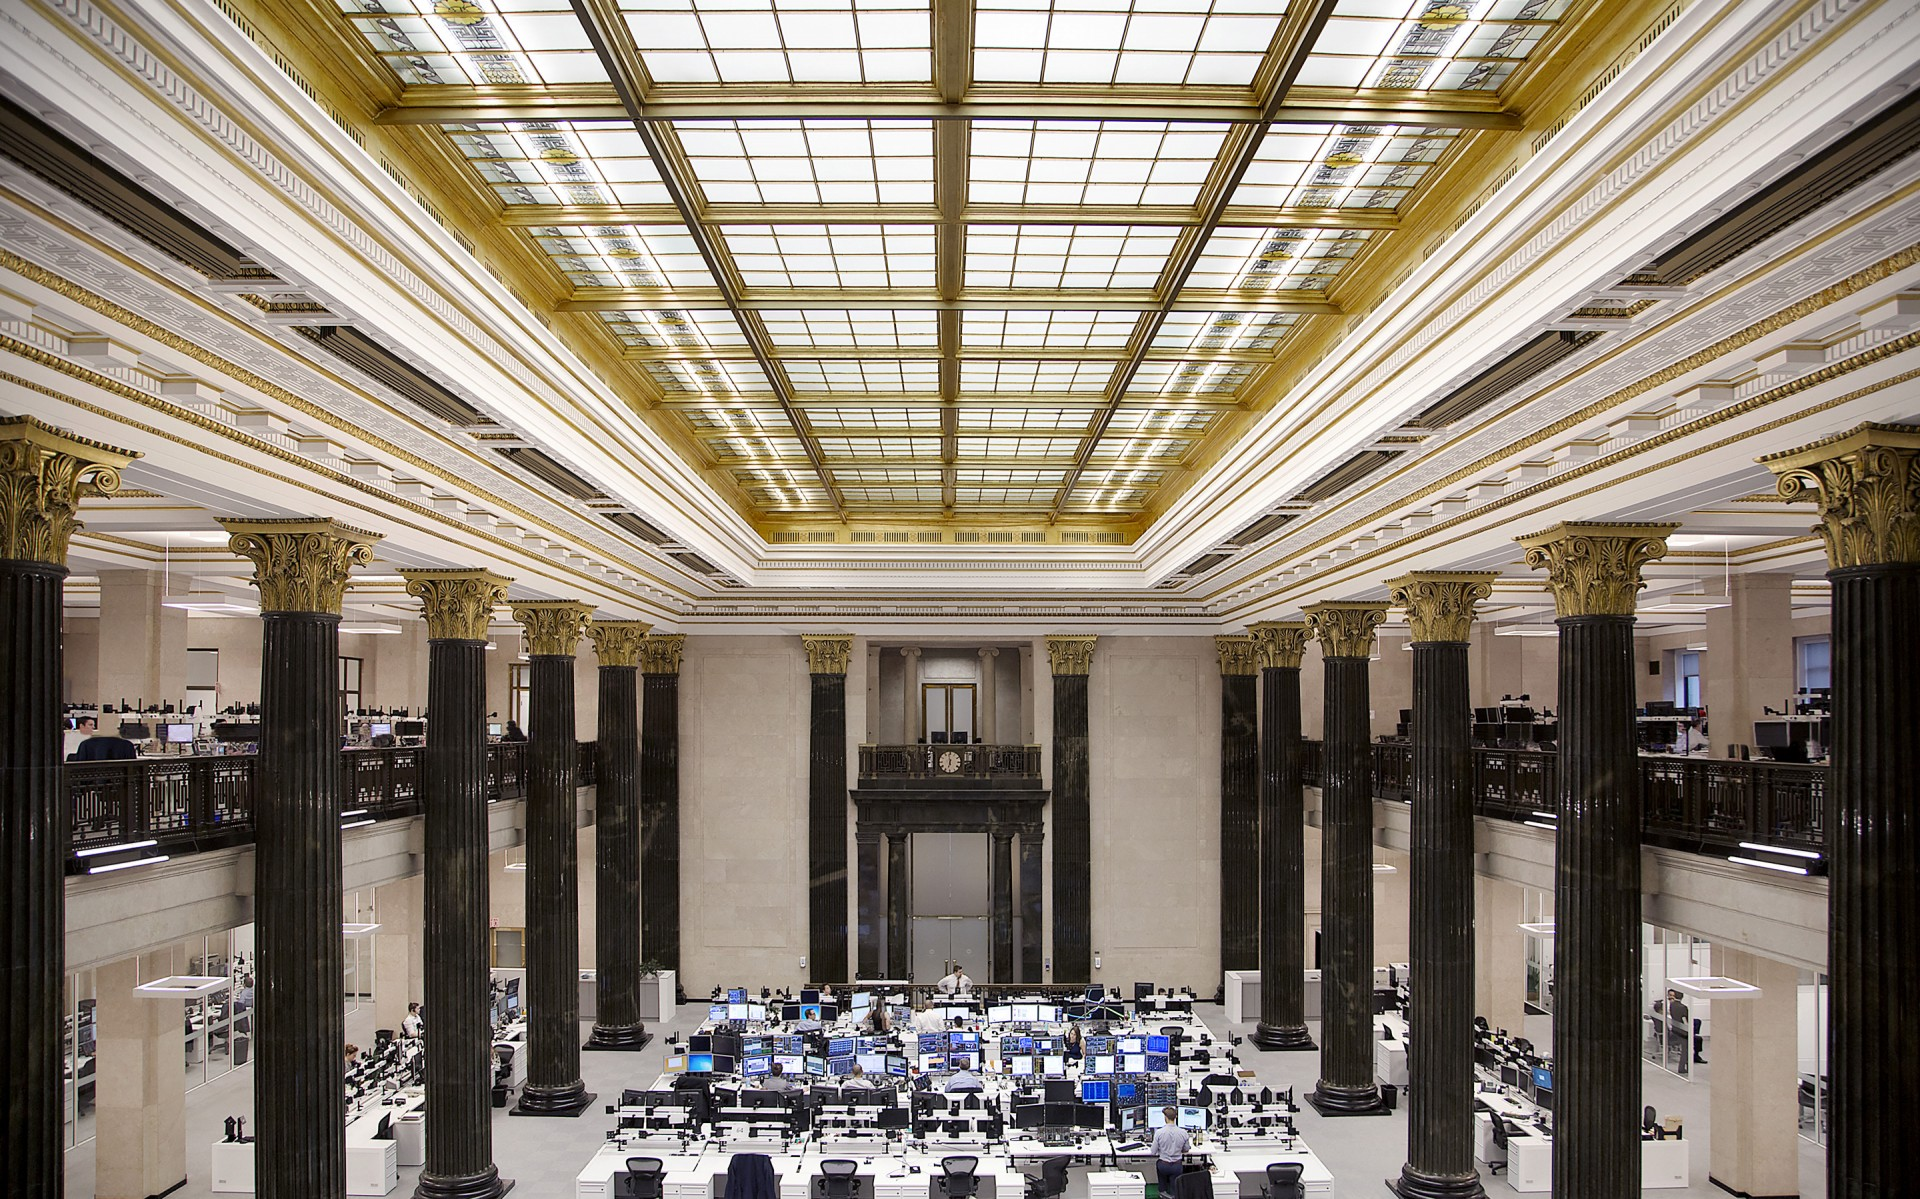 The National Bank of Canada's Montreal headquarters possesses a Grand Hall that is an ornate masterpiece.